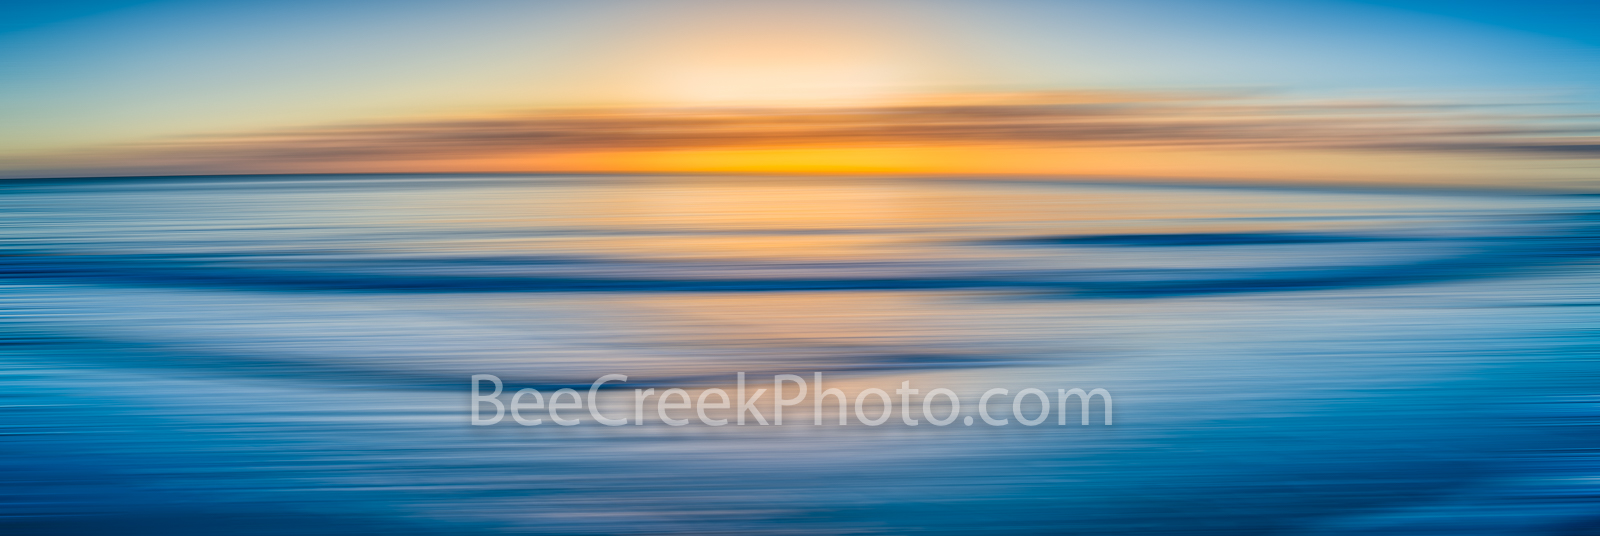 Ocean Blue Abstract Pano  - Sunrise over ocean waves as a digital abstract with this long exposure effect. We capture this image...